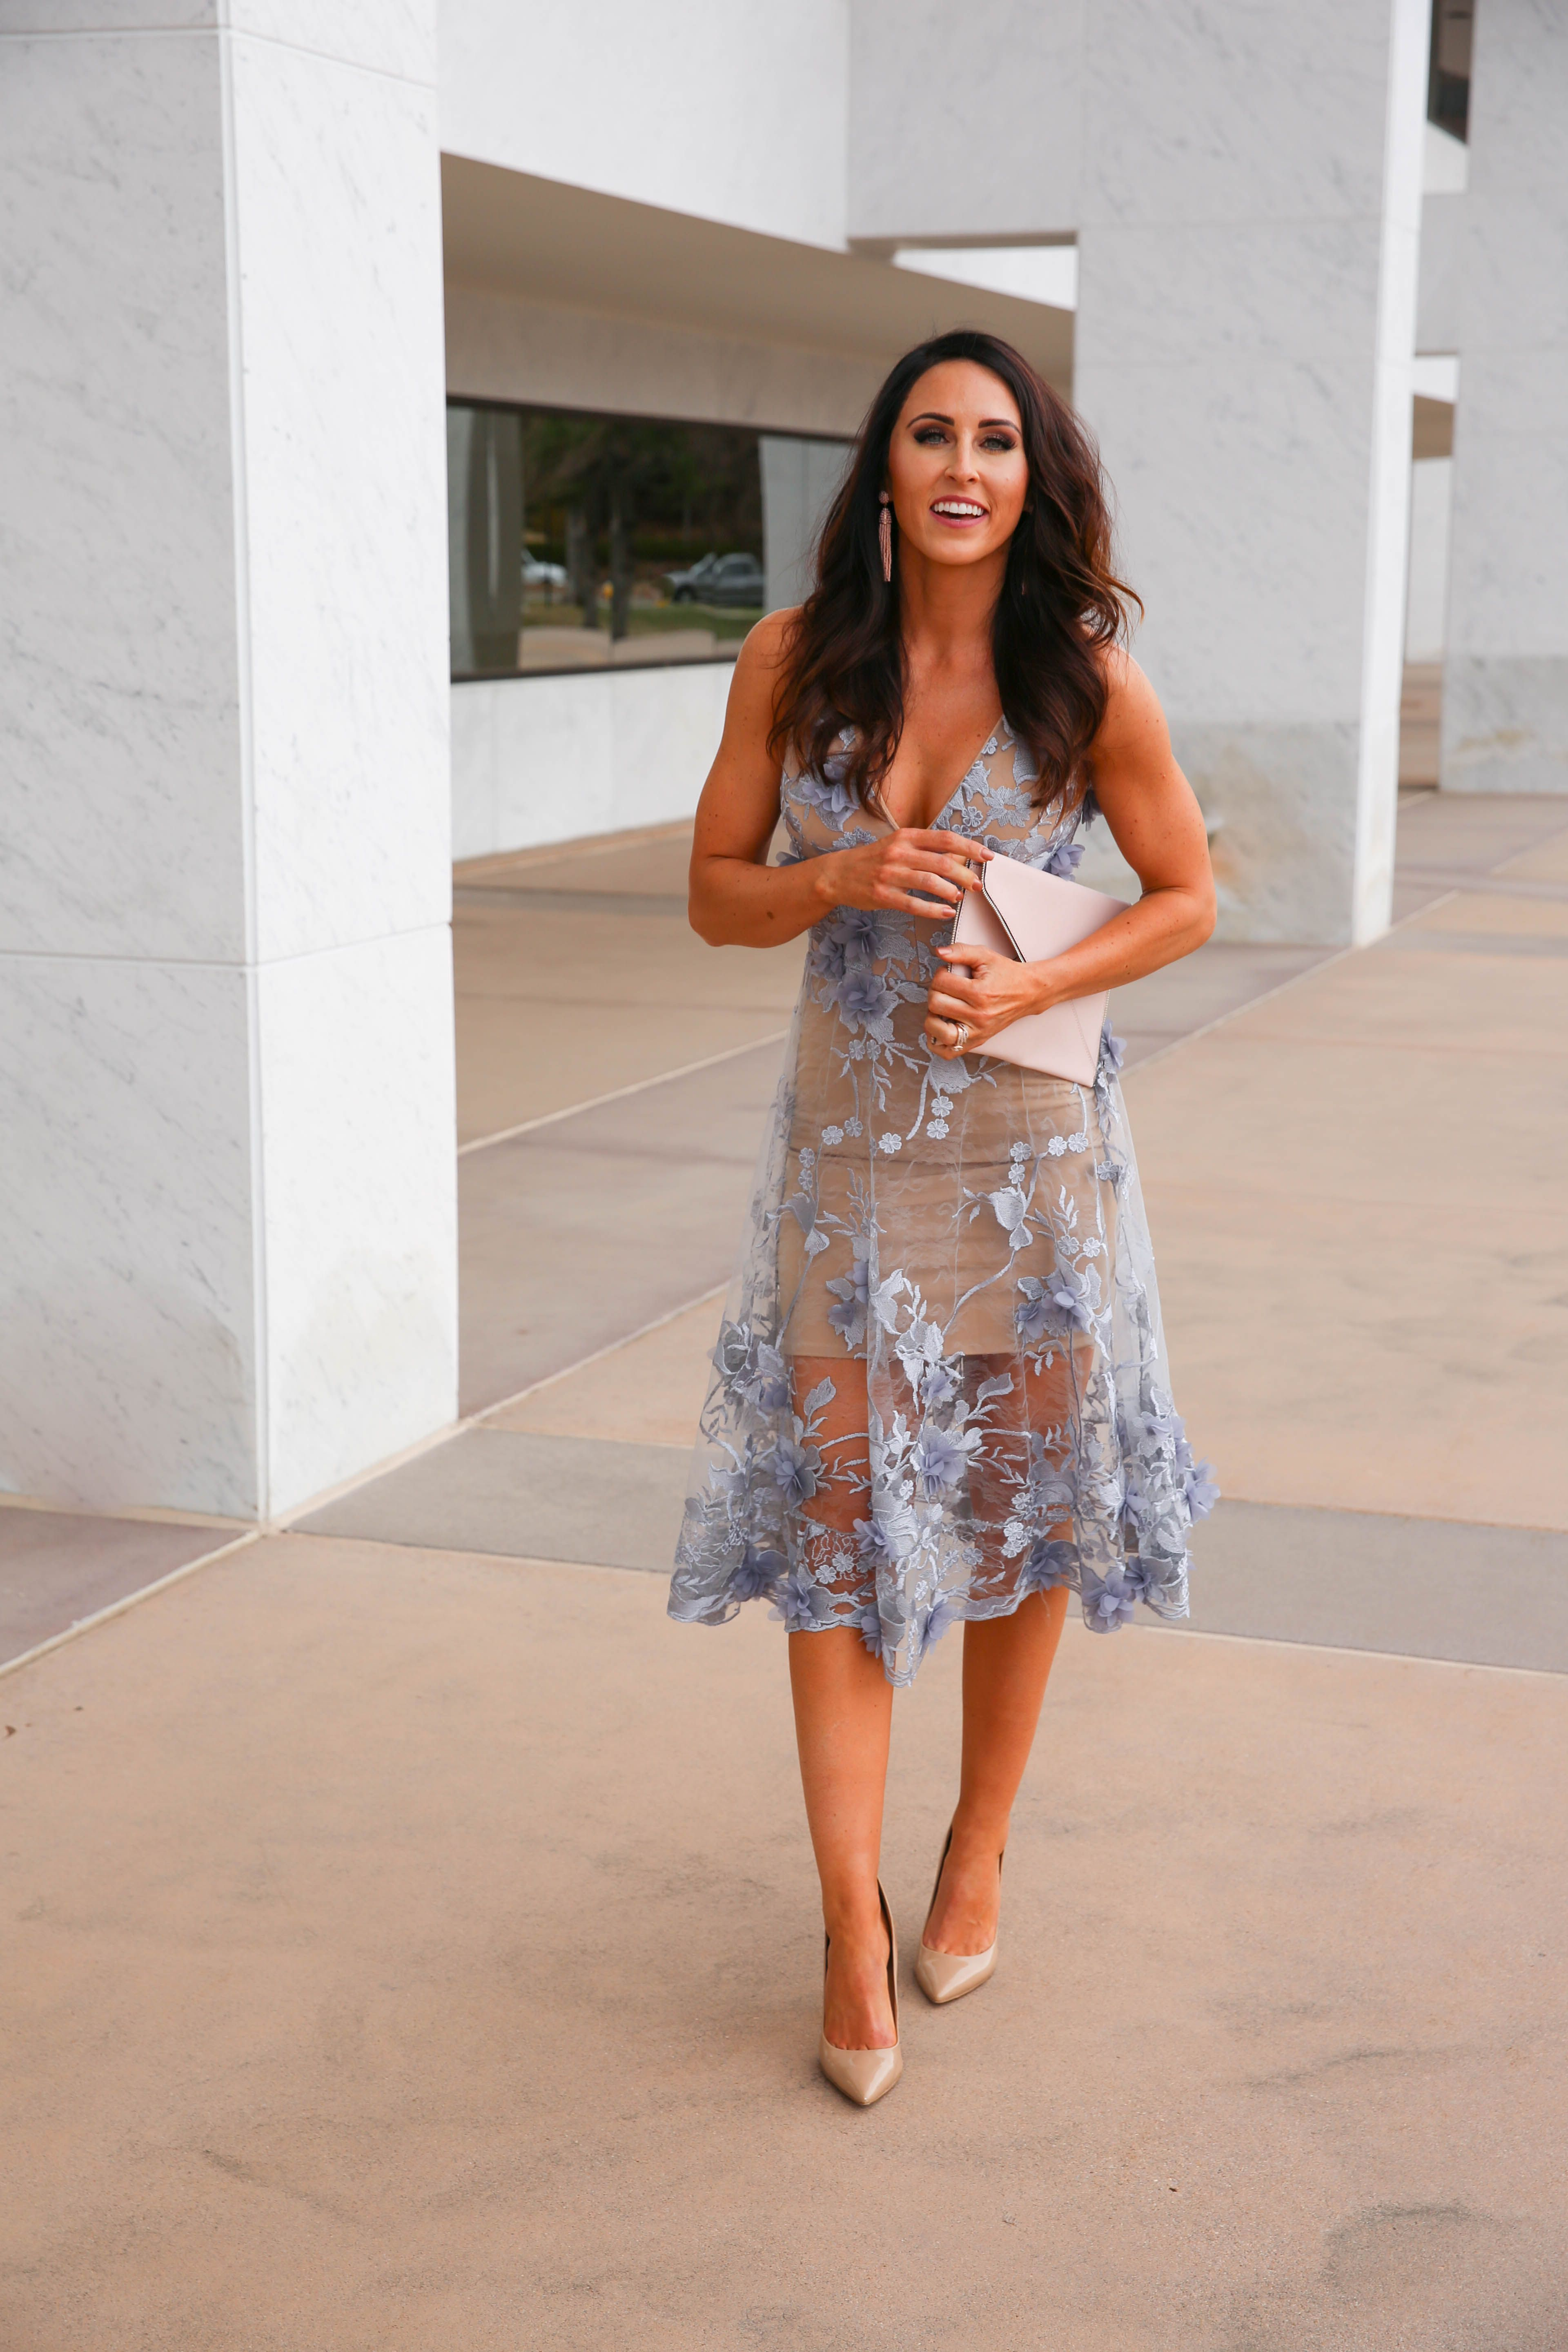 fa3305cbe4 Spring Wedding Guest Looks | Clothes I wish I could wear ...